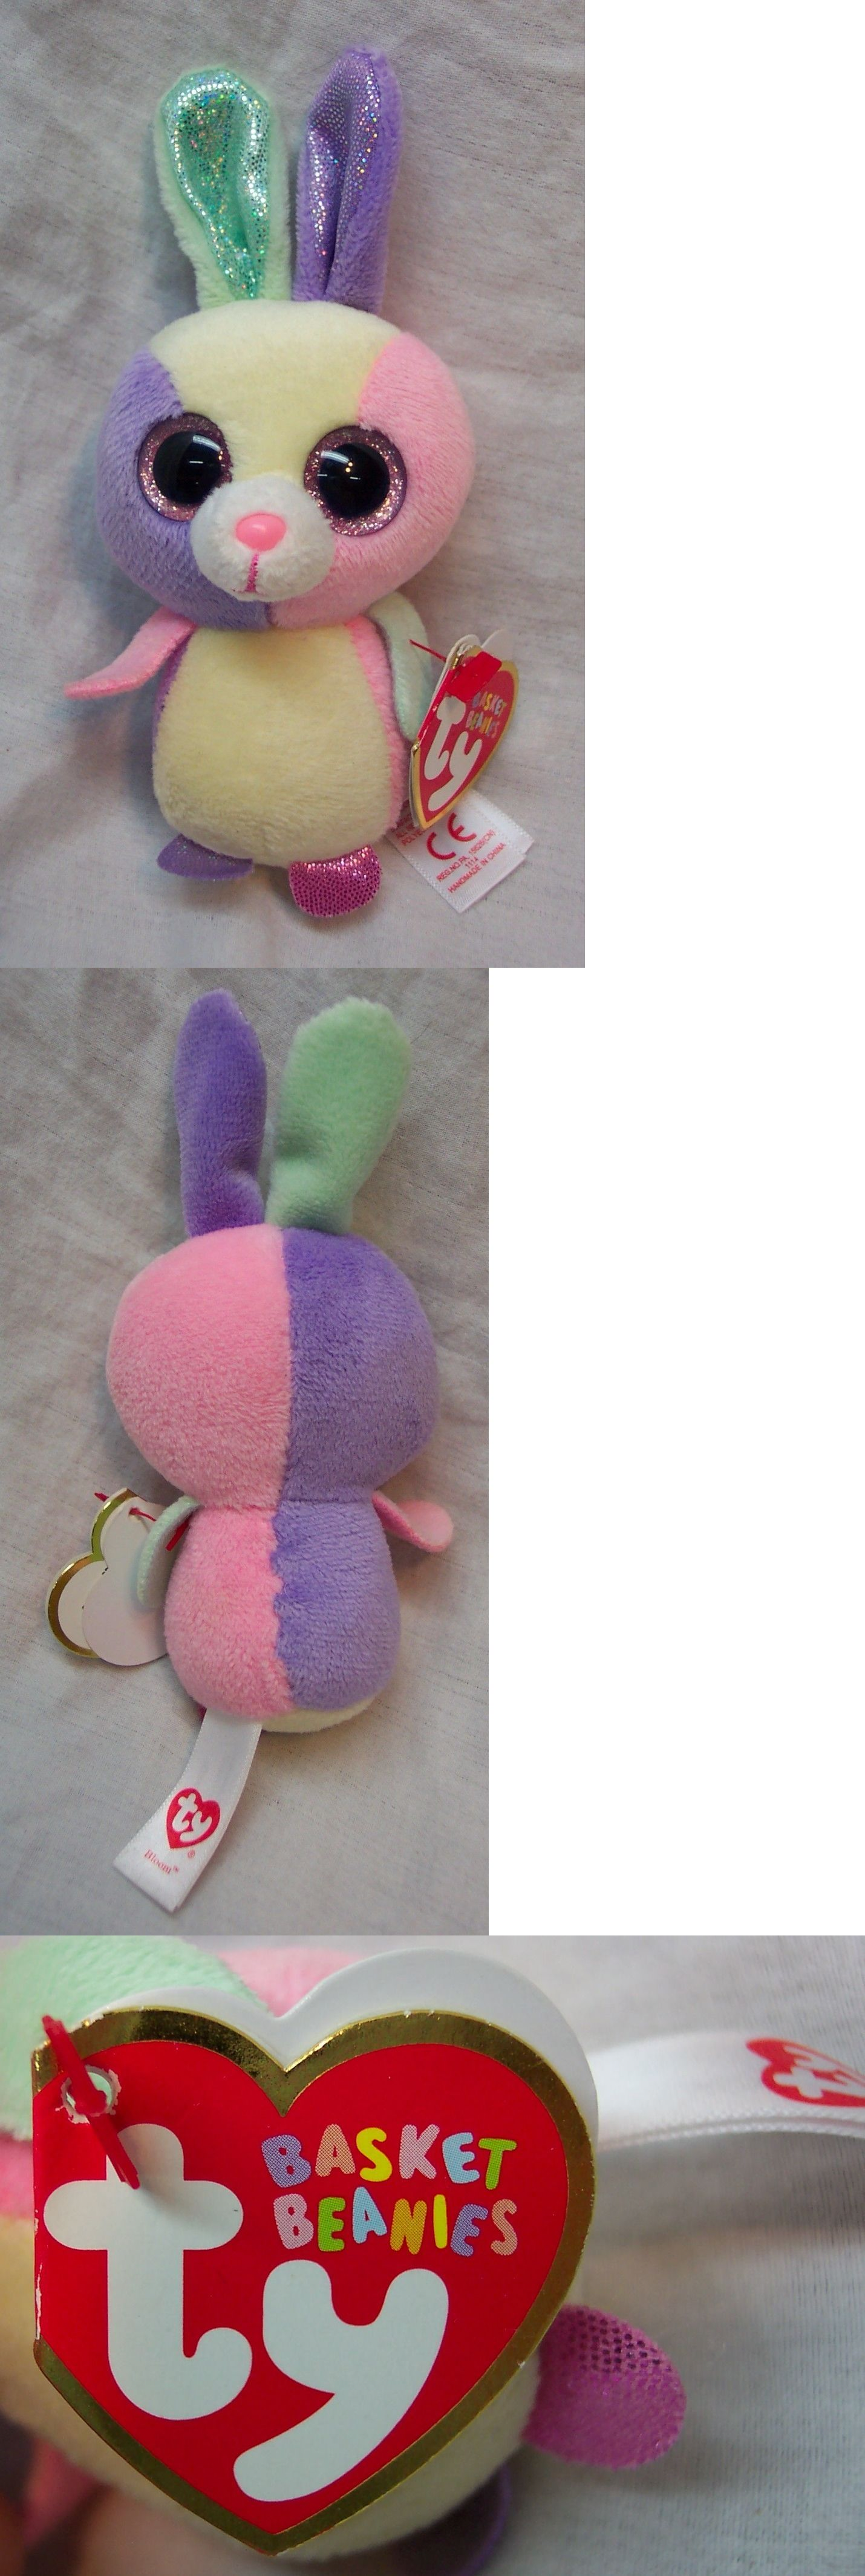 Basket Beanies 158681  Ty Basket Beanies Bloom The Colorful Bunny 5 Plush  Stuffed Animal 2015 New -  BUY IT NOW ONLY   15 on  eBay  basket  beanies   bloom ... a094d6ee2300